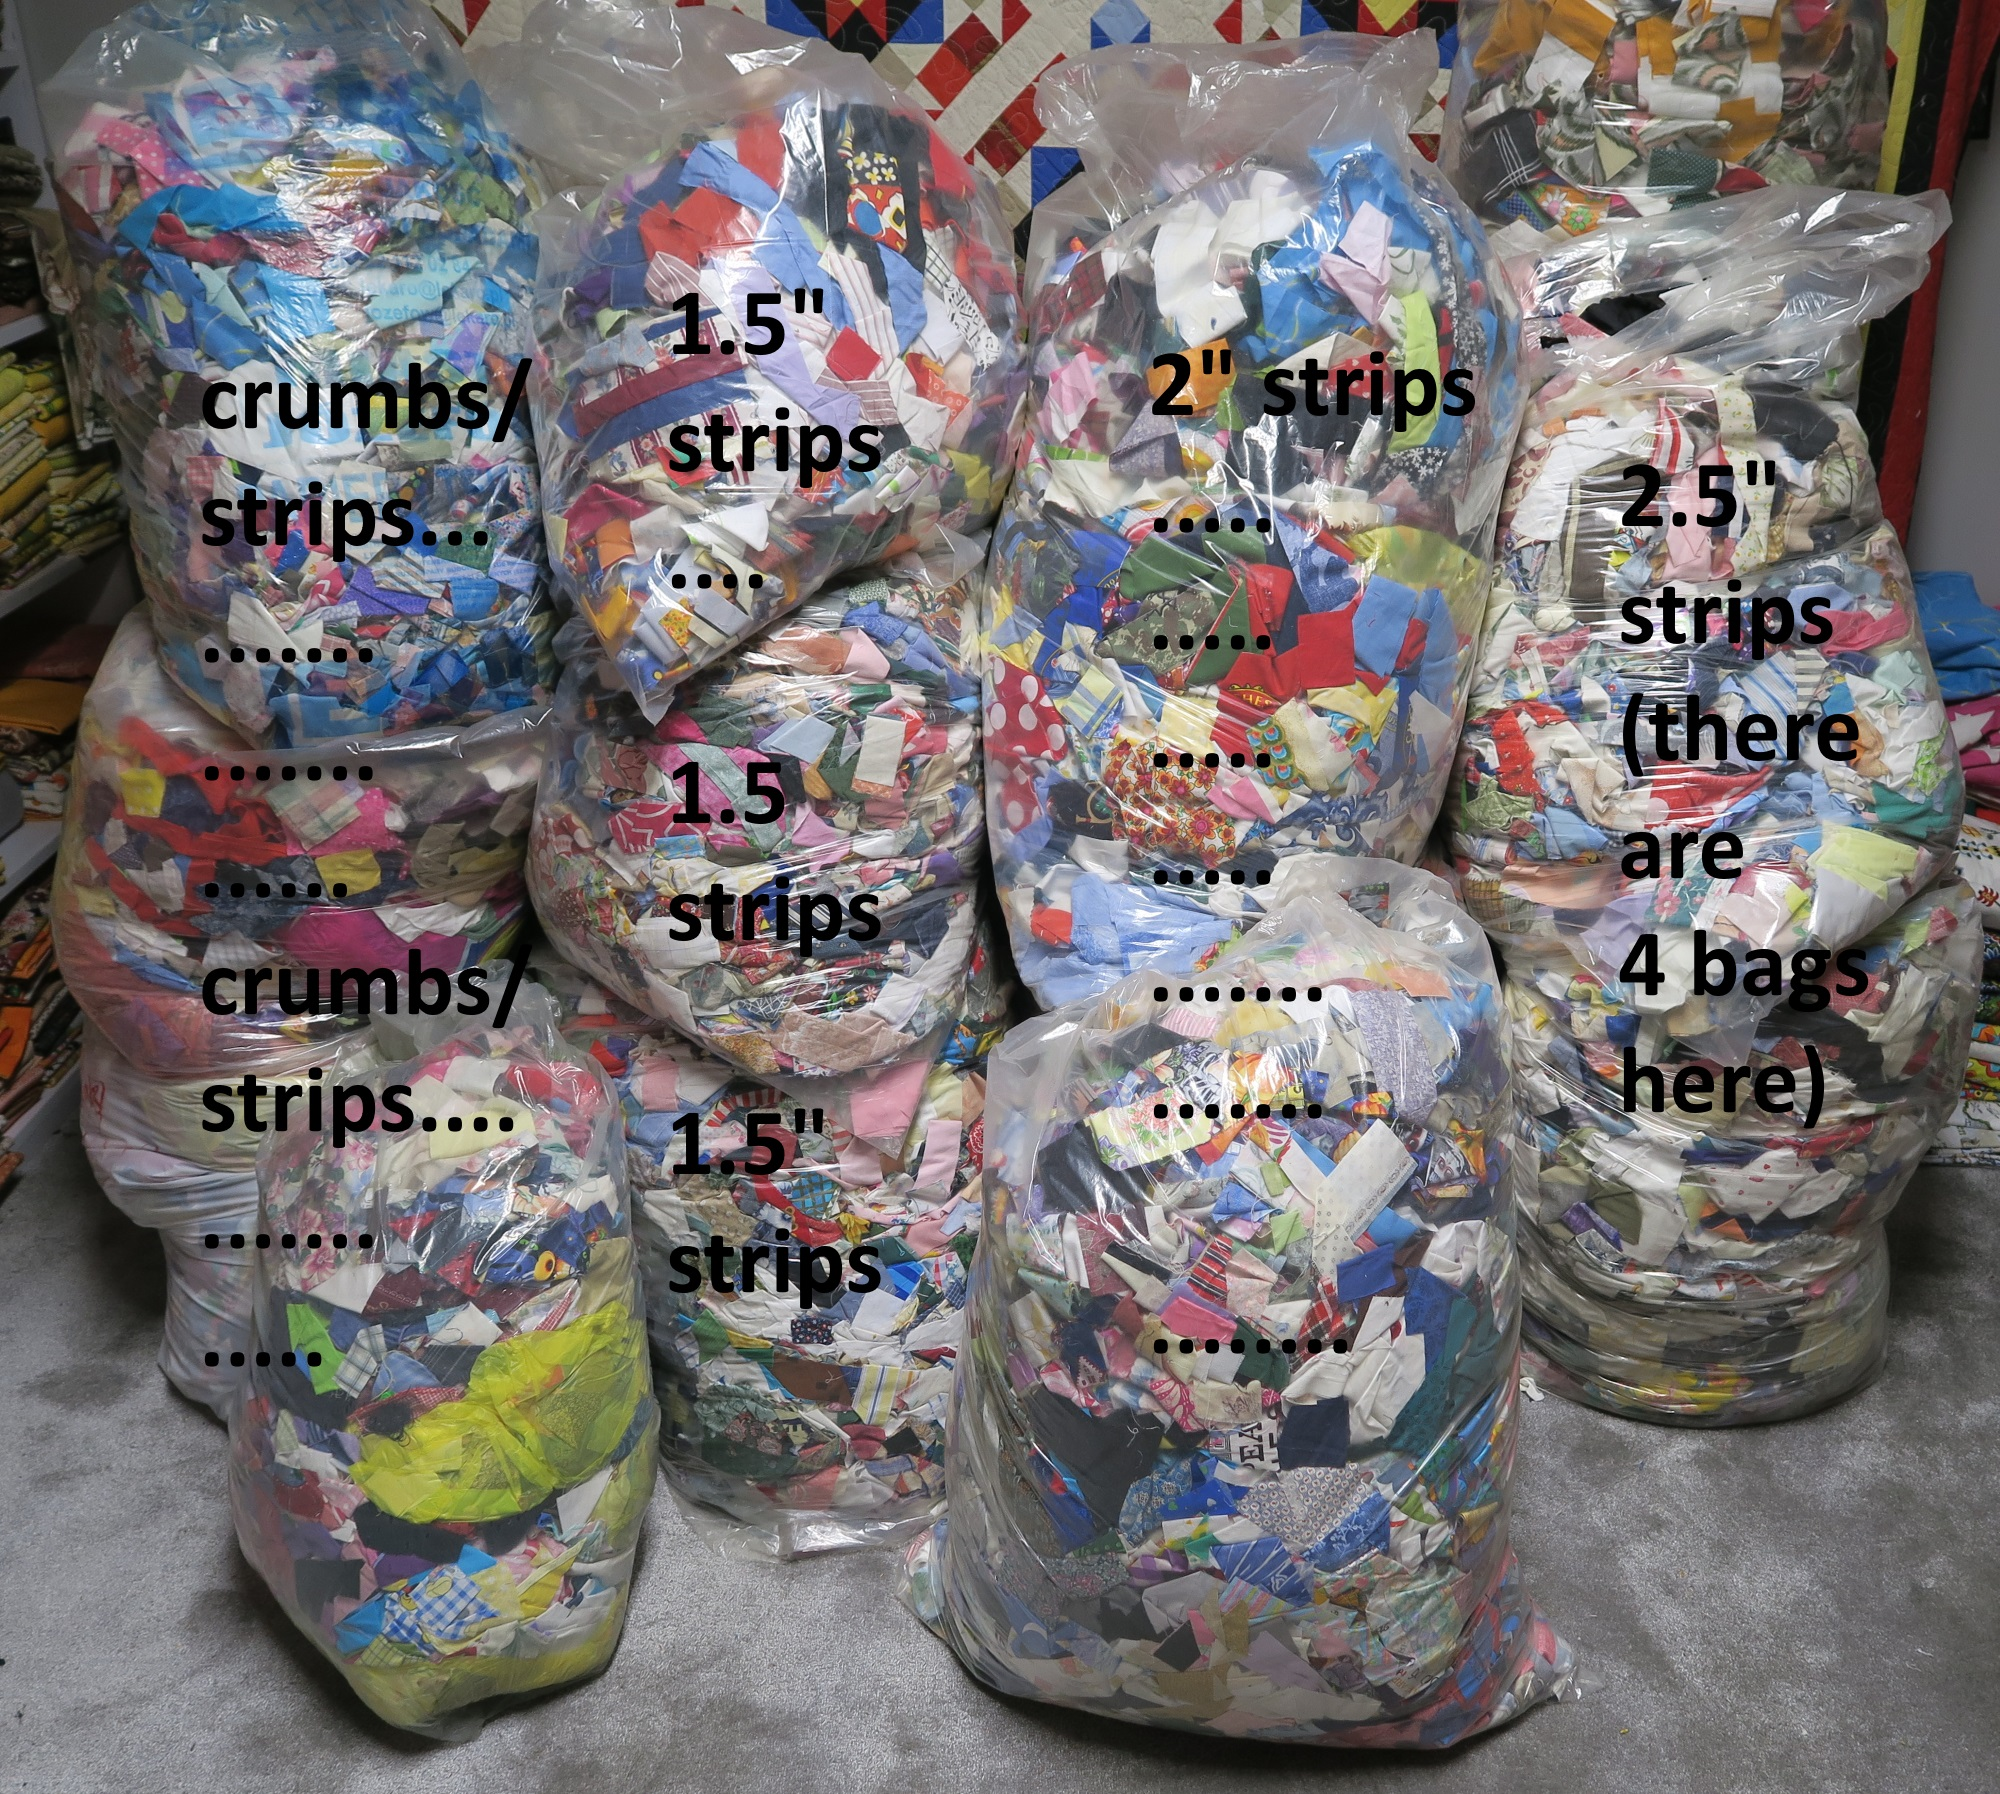 I do have something like 4 bags of crumbs and strips. That is crazy! But I'd rather have them in this form than in the previous form! This way they are quite usable - even it means I have to pull strips out of bags. I know many of you sort yours by colors - maybe at some point I will do that. I'm sure they would take less space if they were rolled into nice neat piles. Maybe someday if I get too tired of sewing I'll tackle that. It would be pretty cool, actually, to have them all stacked in boxes like that.